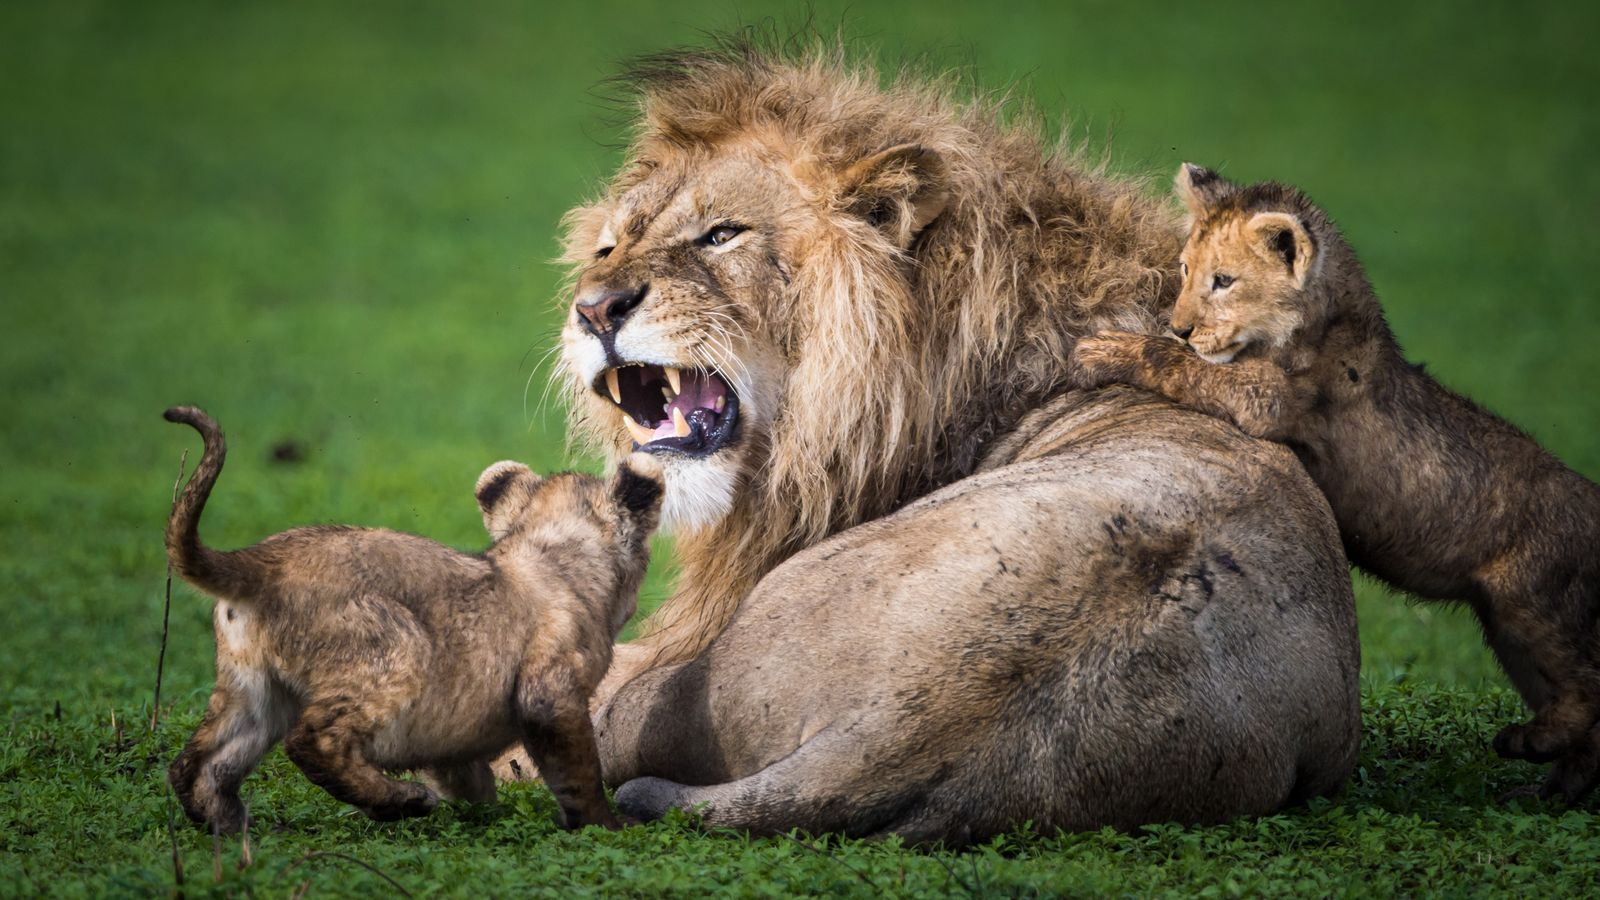 Photo of the Day Male lion, Lion images, Lion